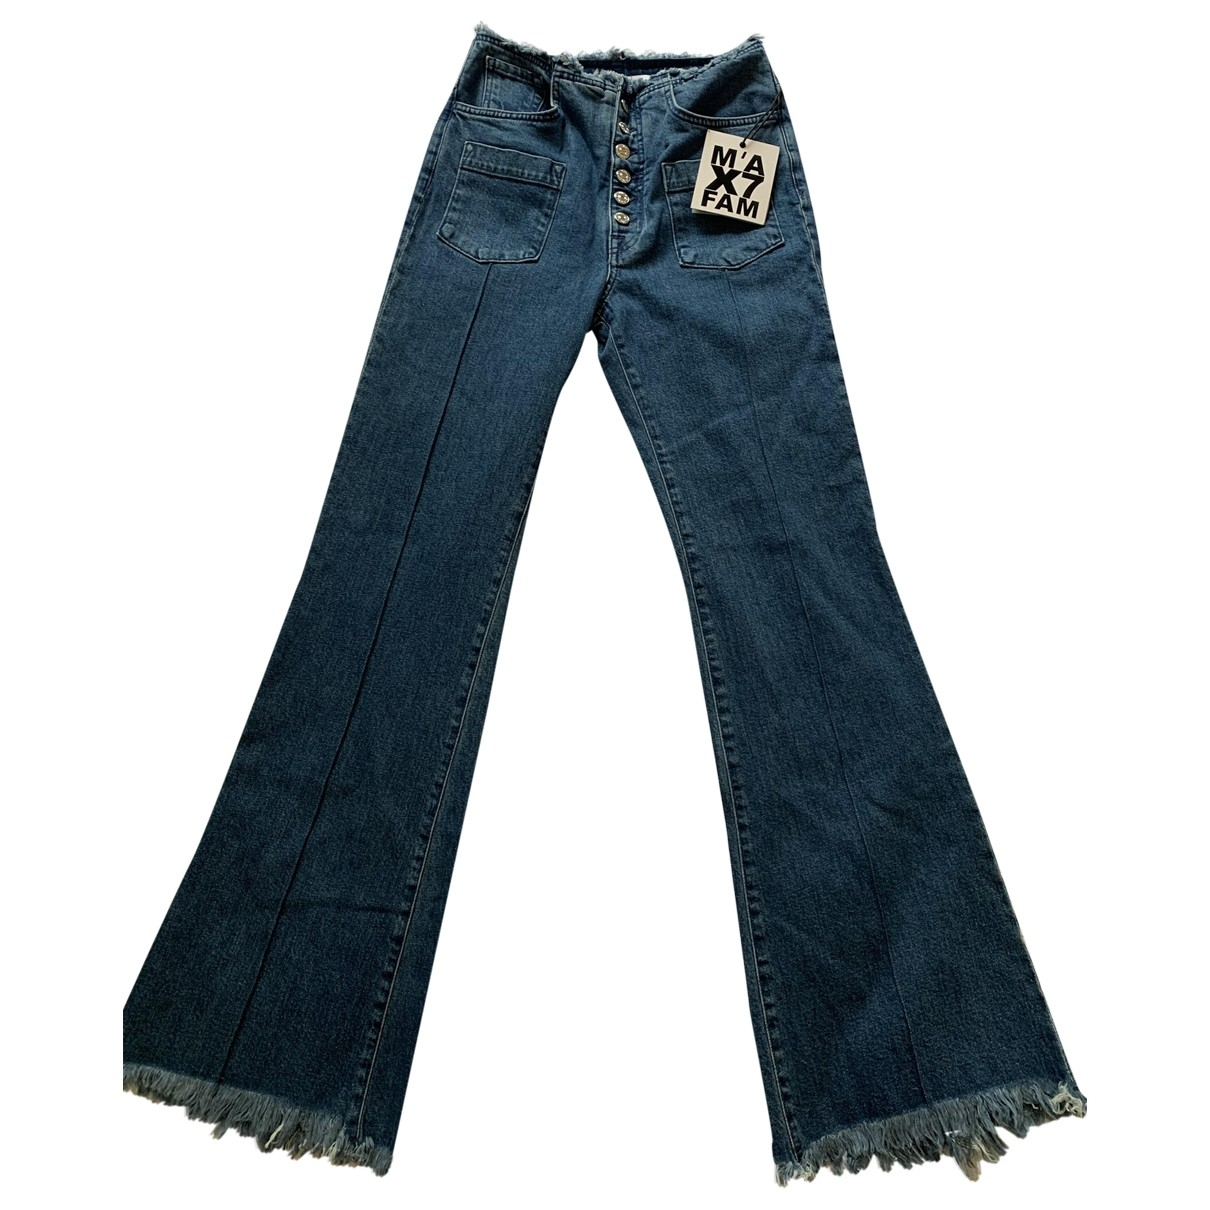 7 For All Mankind \N Blue Denim - Jeans Jeans for Women 27 US